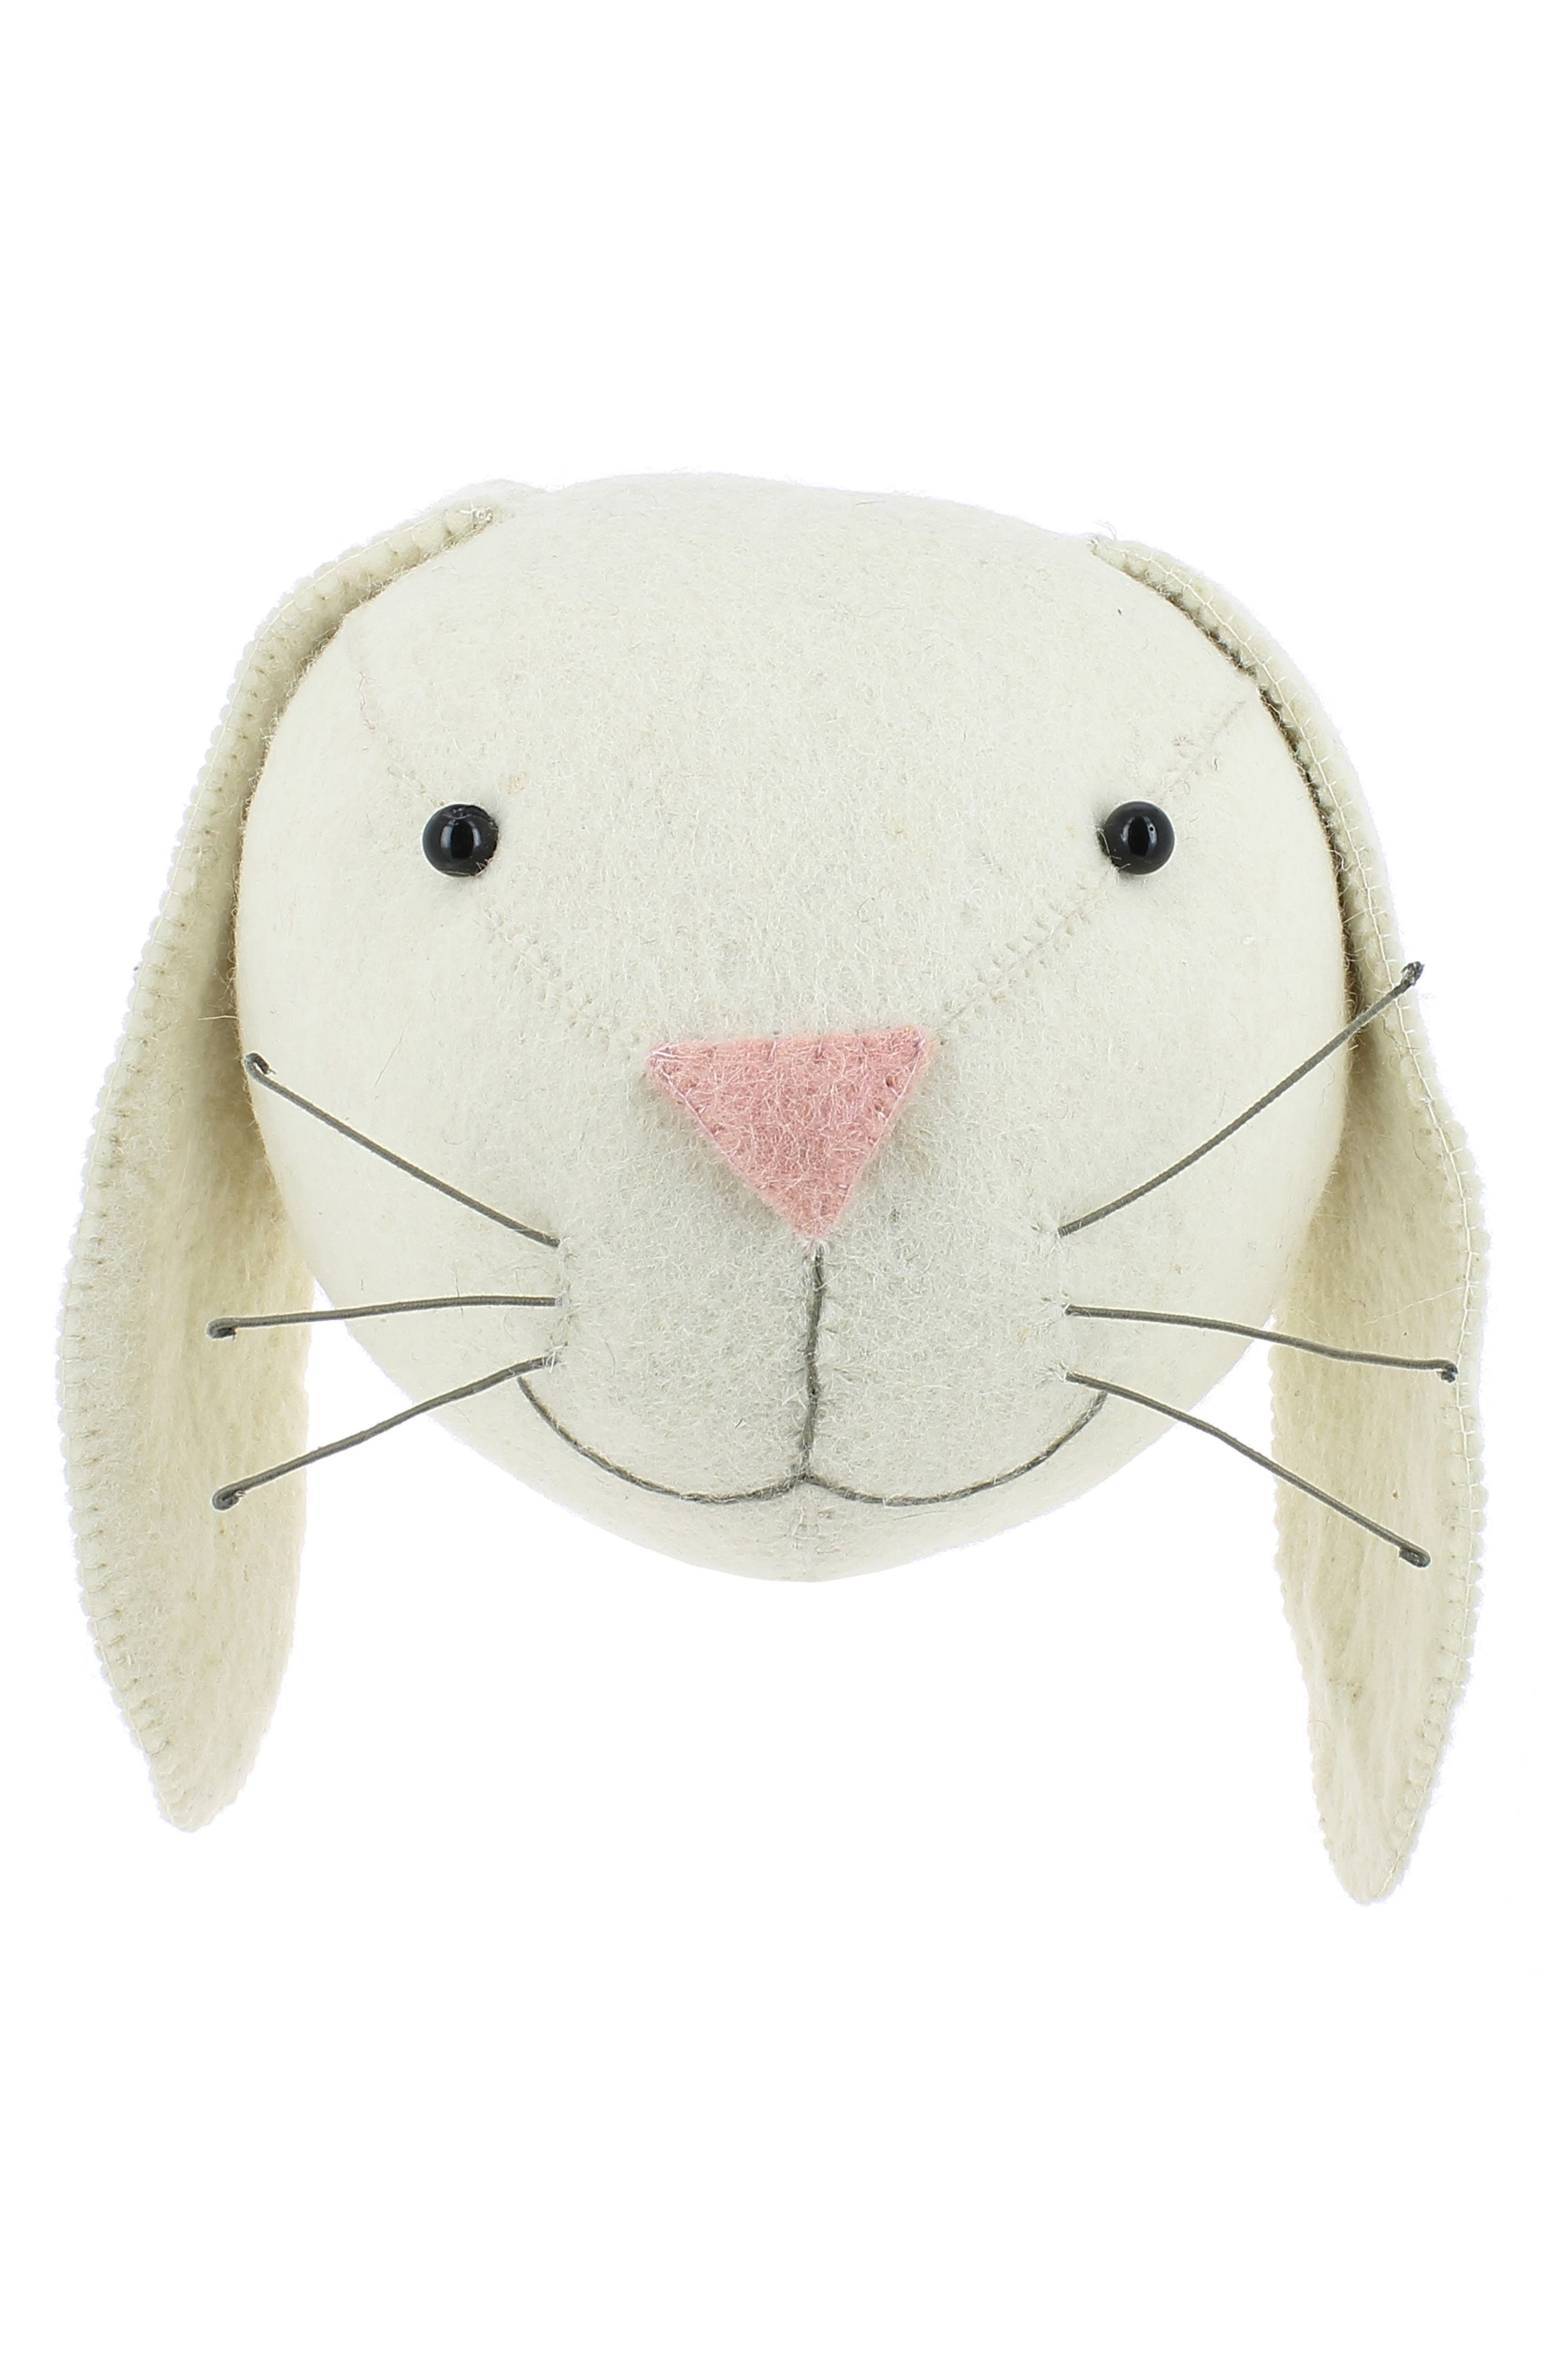 Fiona Walker Bunny Head Wall Art Size One Size  Ivory